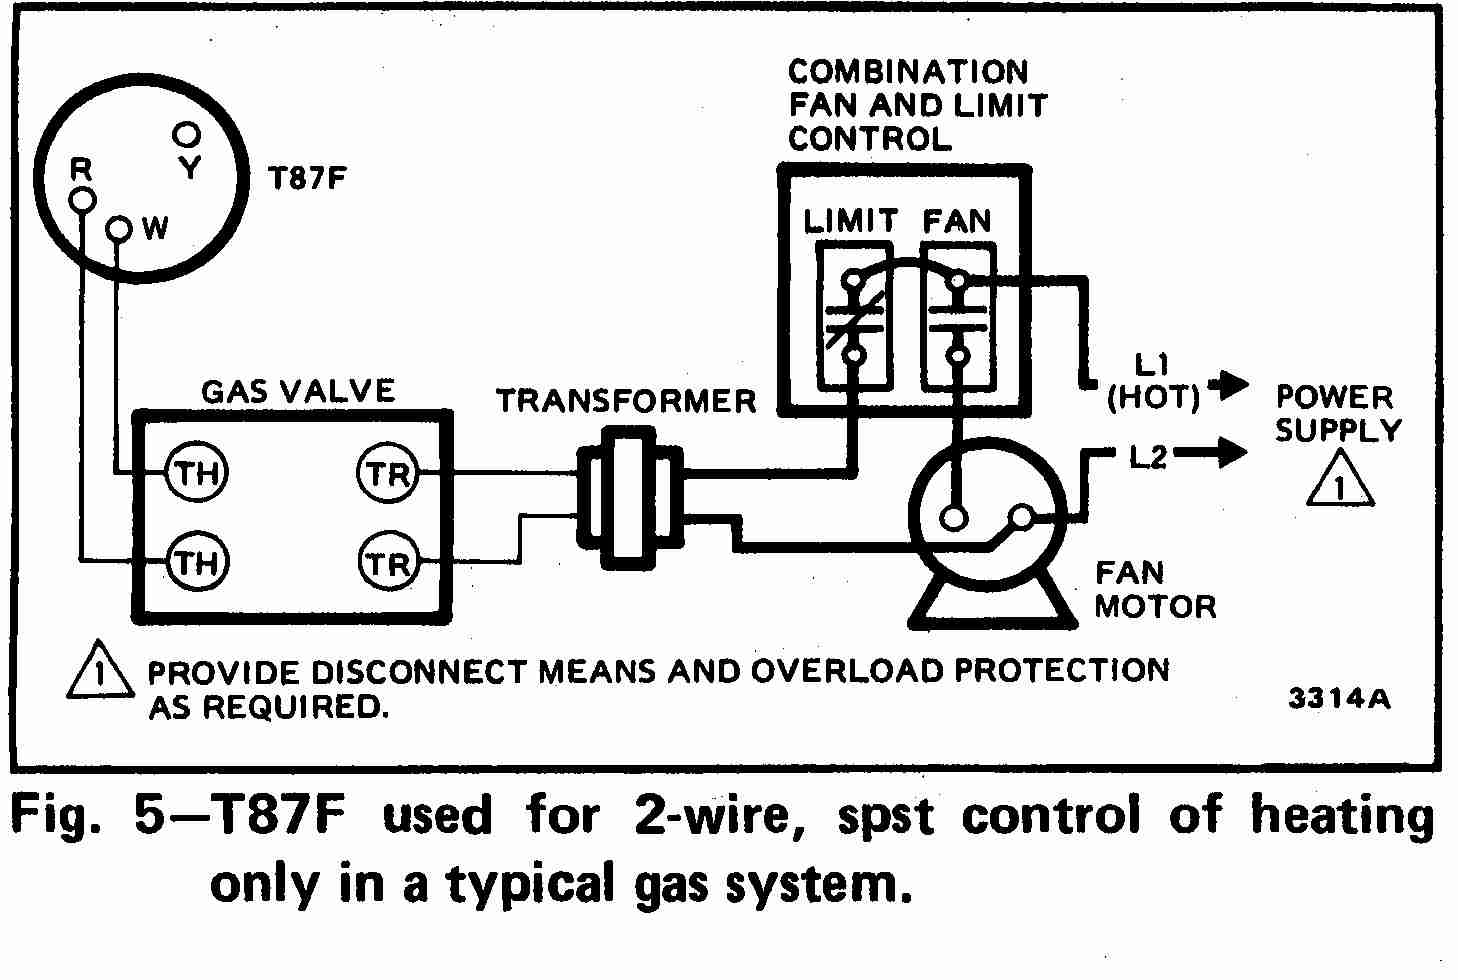 room thermostat wiring diagrams for hvac systems,Wiring diagram,Wiring Diagram Hvac